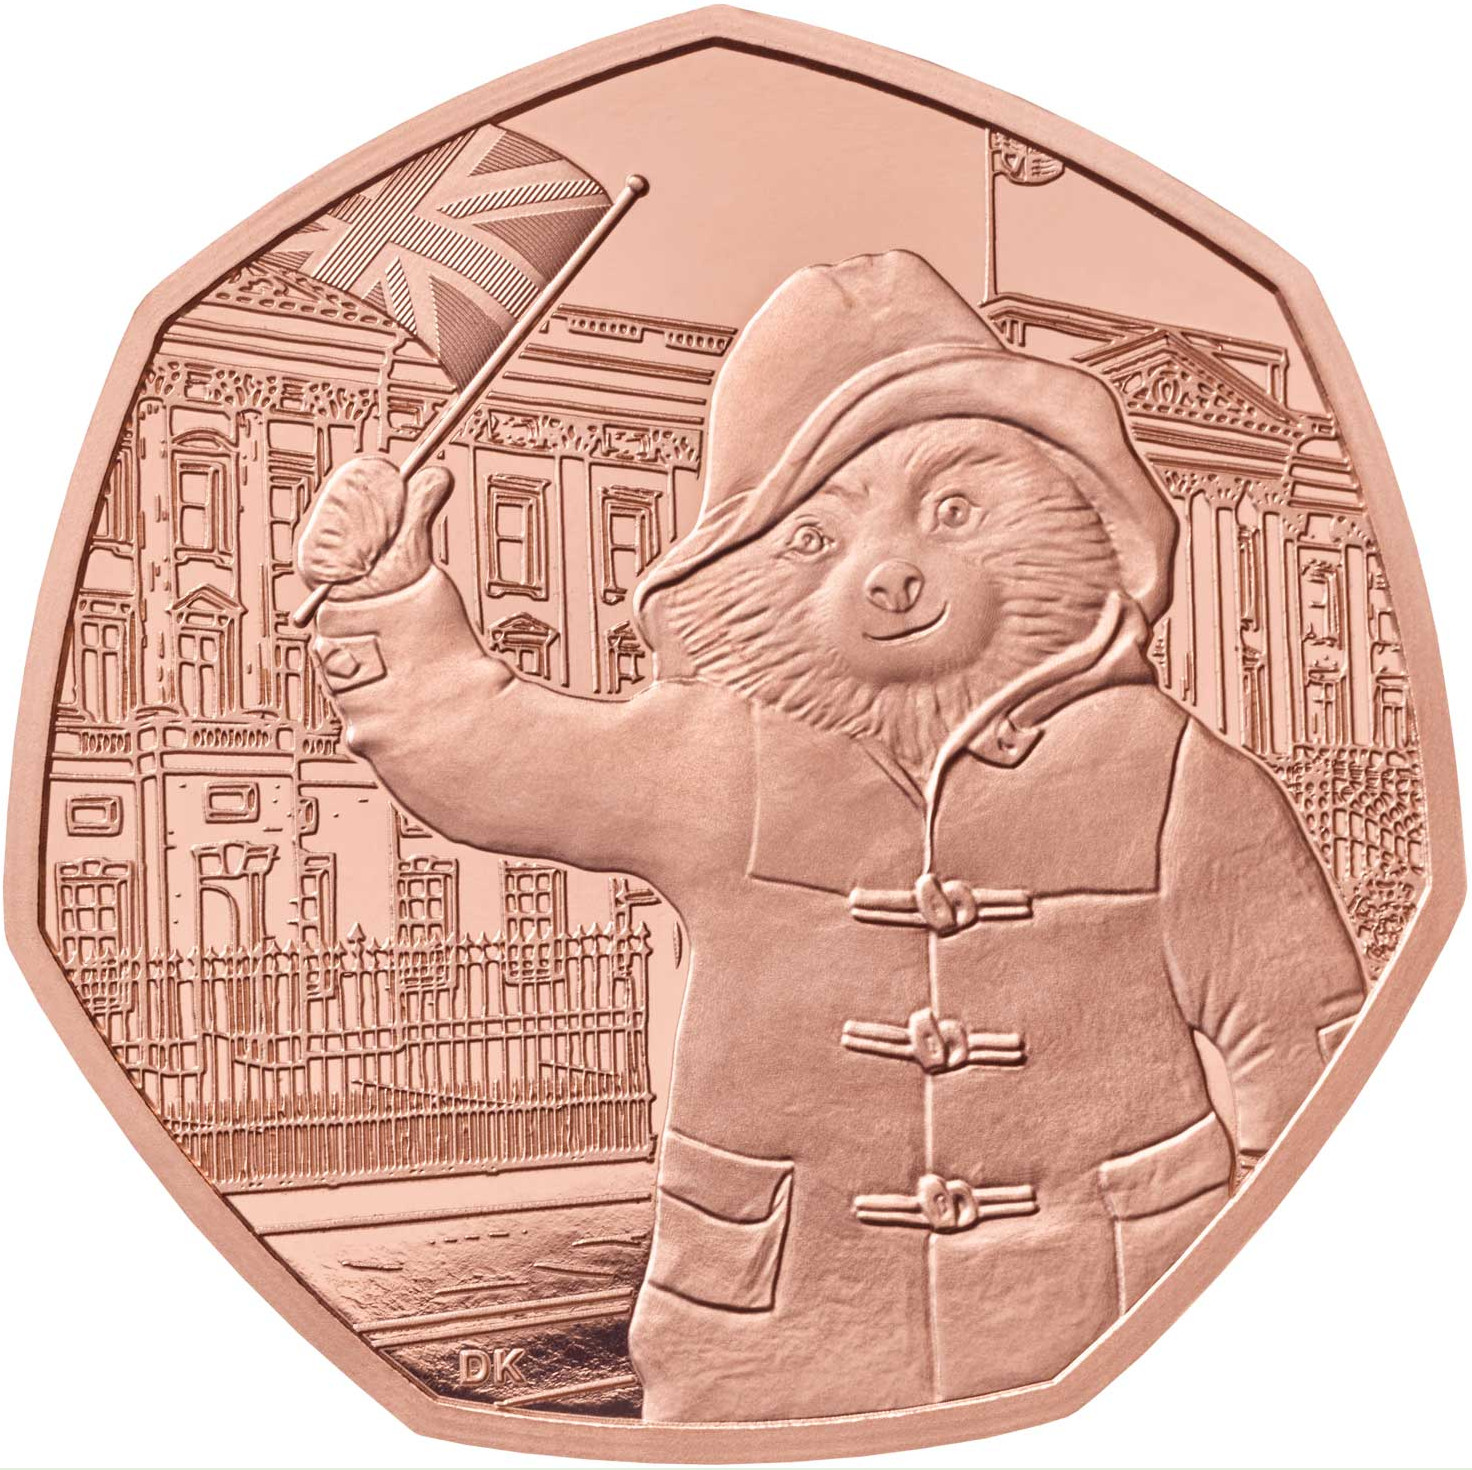 Fifty Pence 2018 Paddington Bear at Buckingham Palace: Photo Paddington at Buckingham Palace 2018 UK 50p Gold Proof Coin